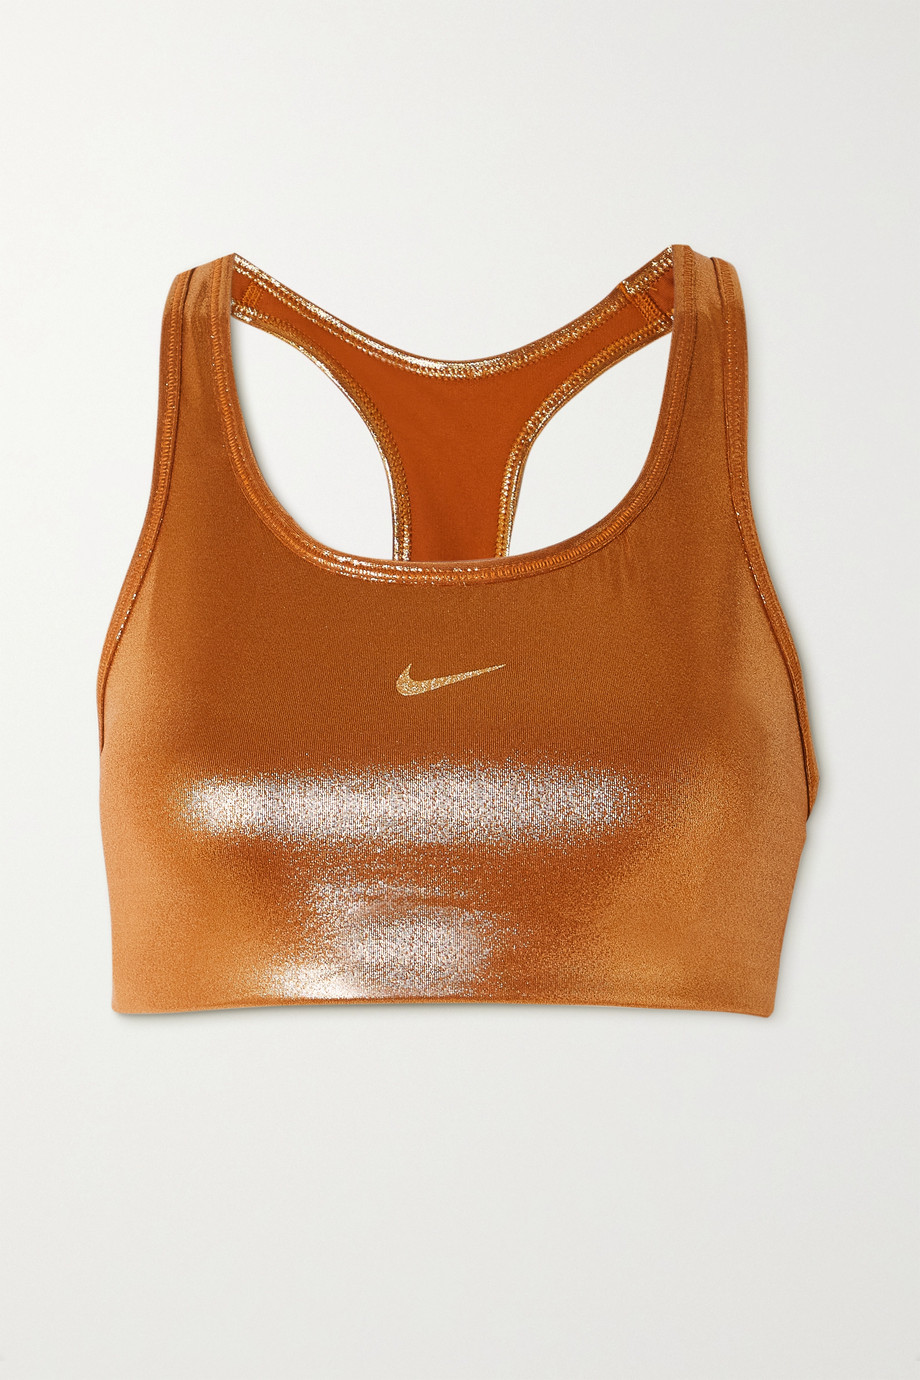 Nike Icon Clash cutout metallic stretch sports bra